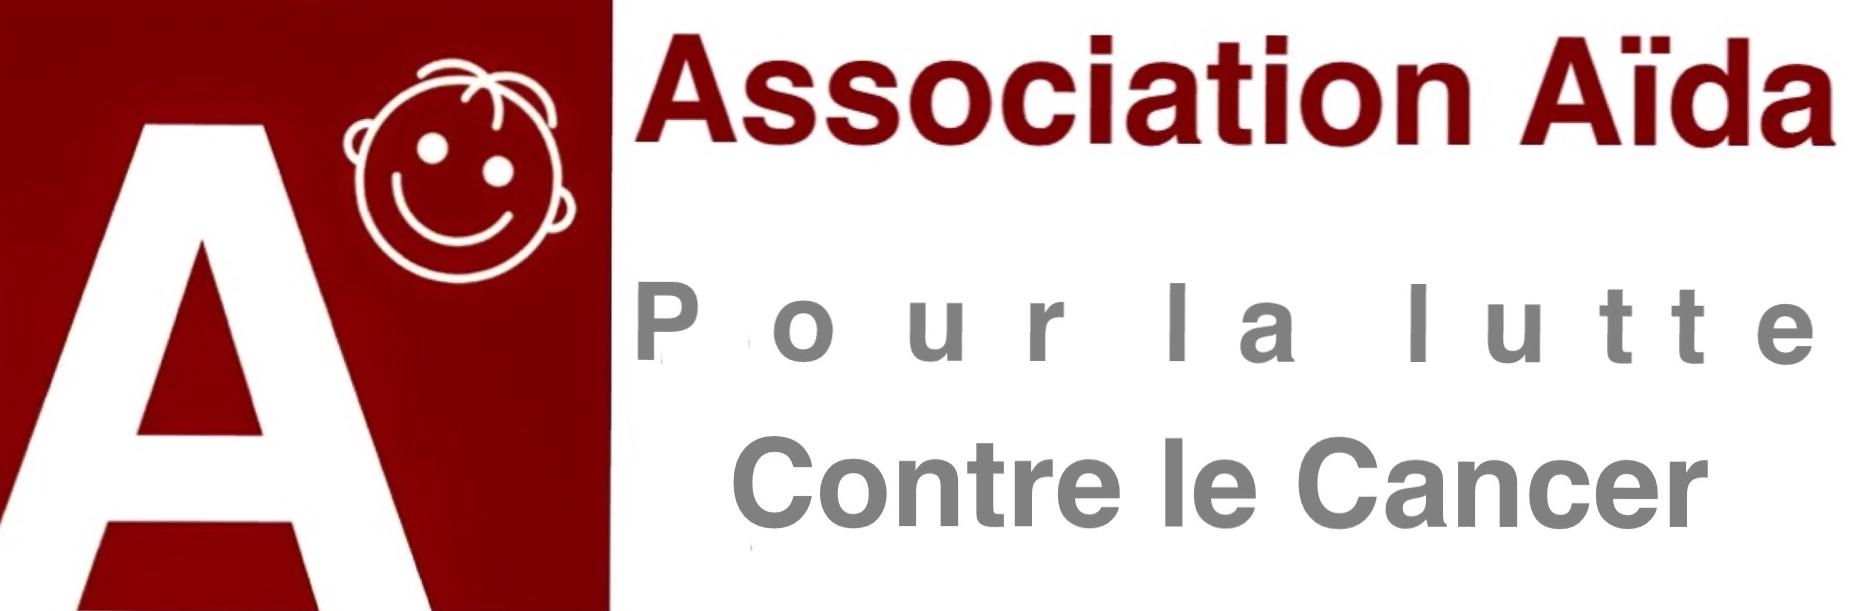 Adhésion à la Gazette d'Aïda  - Association Aïda